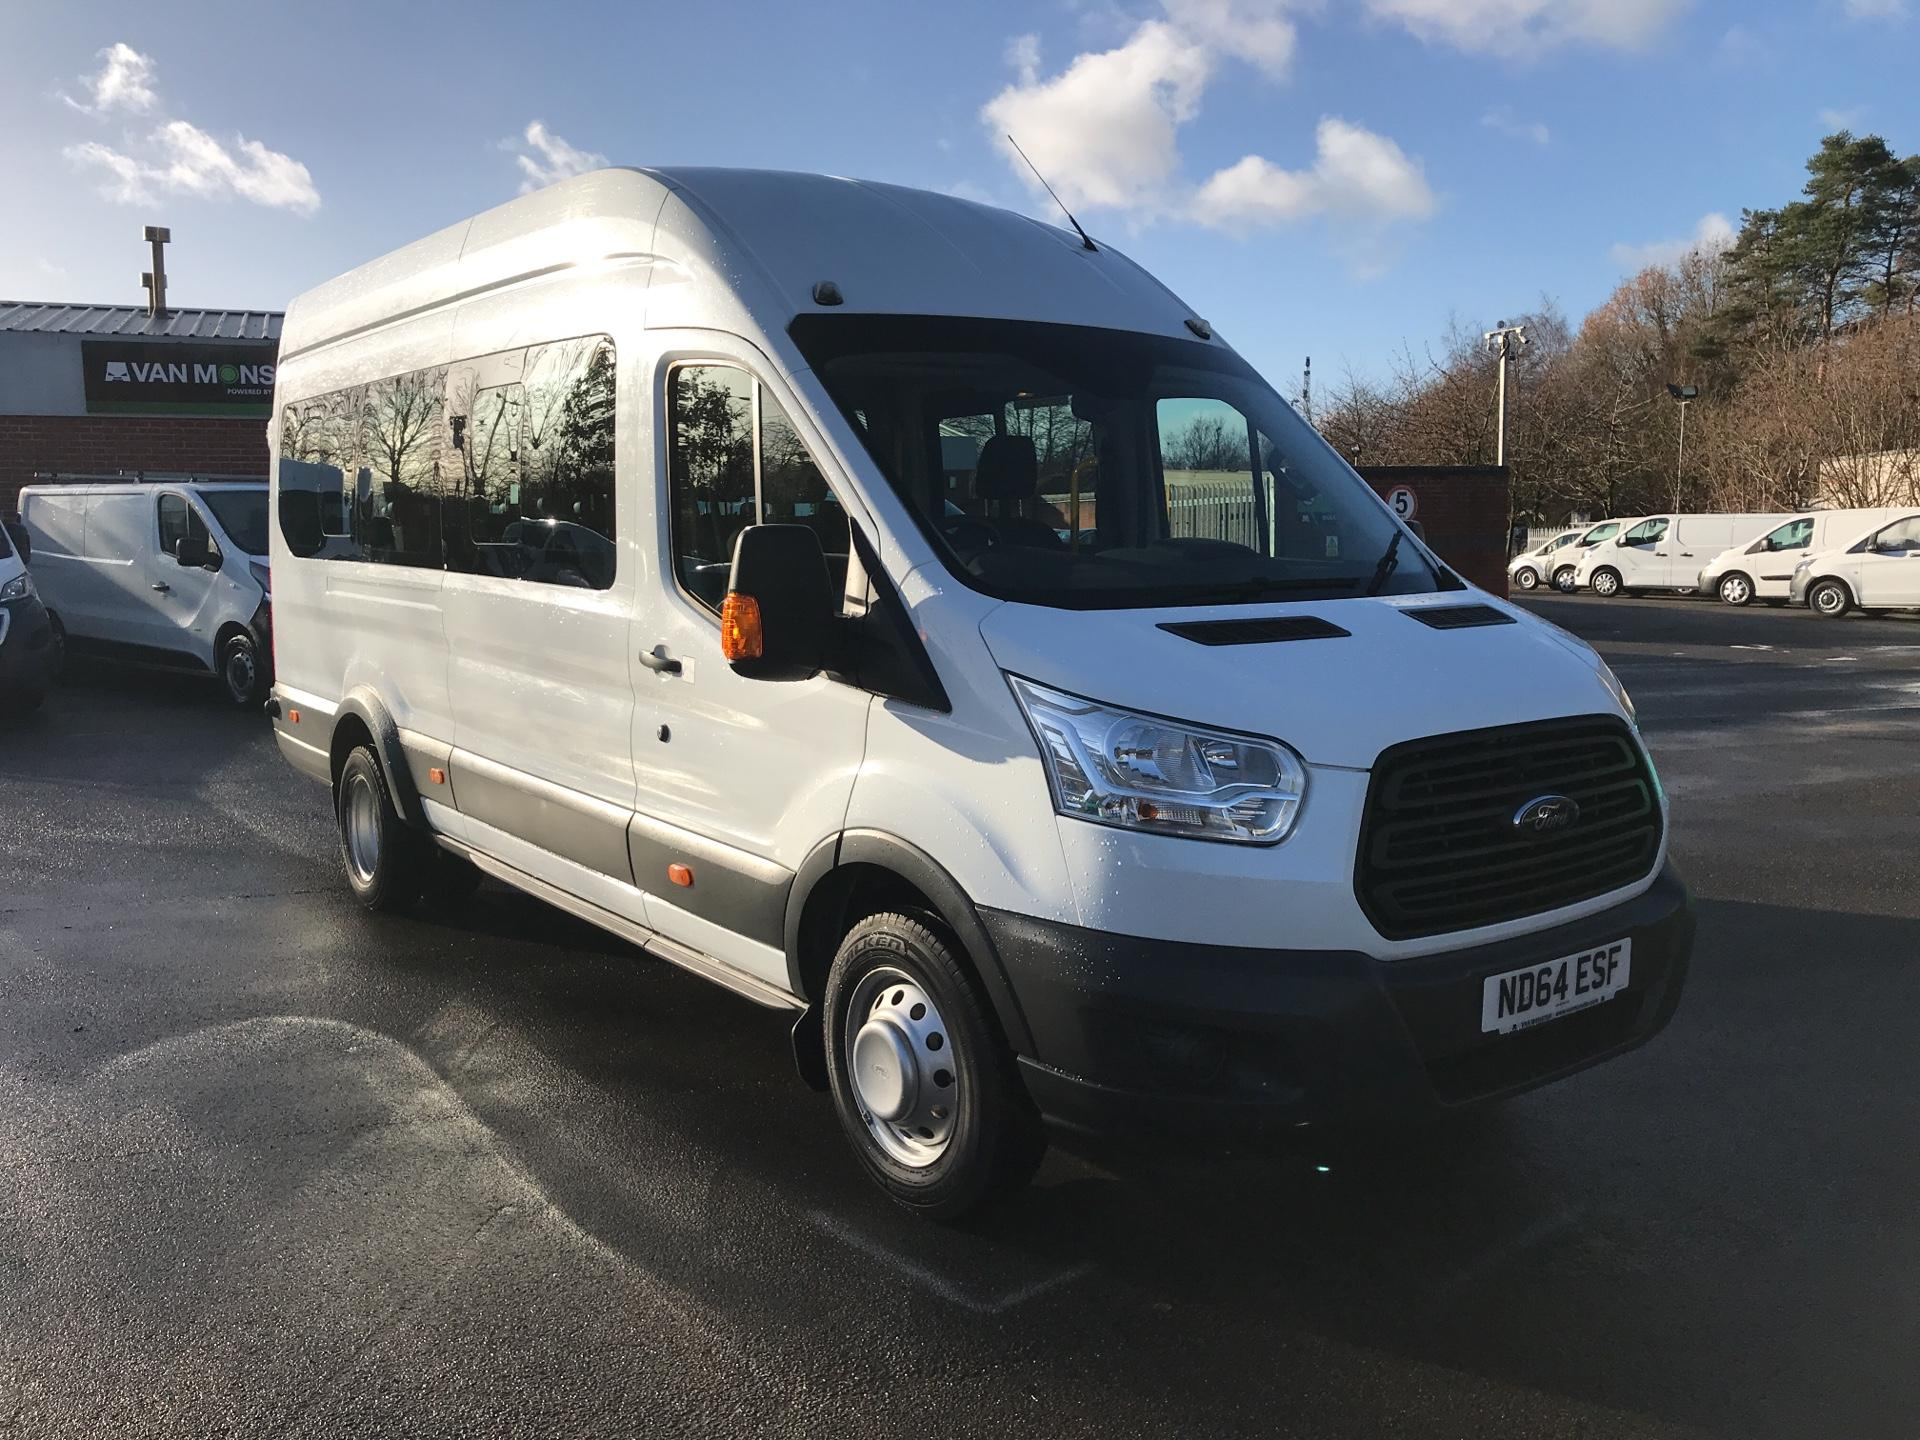 2015 Ford Transit T460 L4 H3 HIGH ROOF MINIBUS 125PS EURO 6 (ND64ESF)